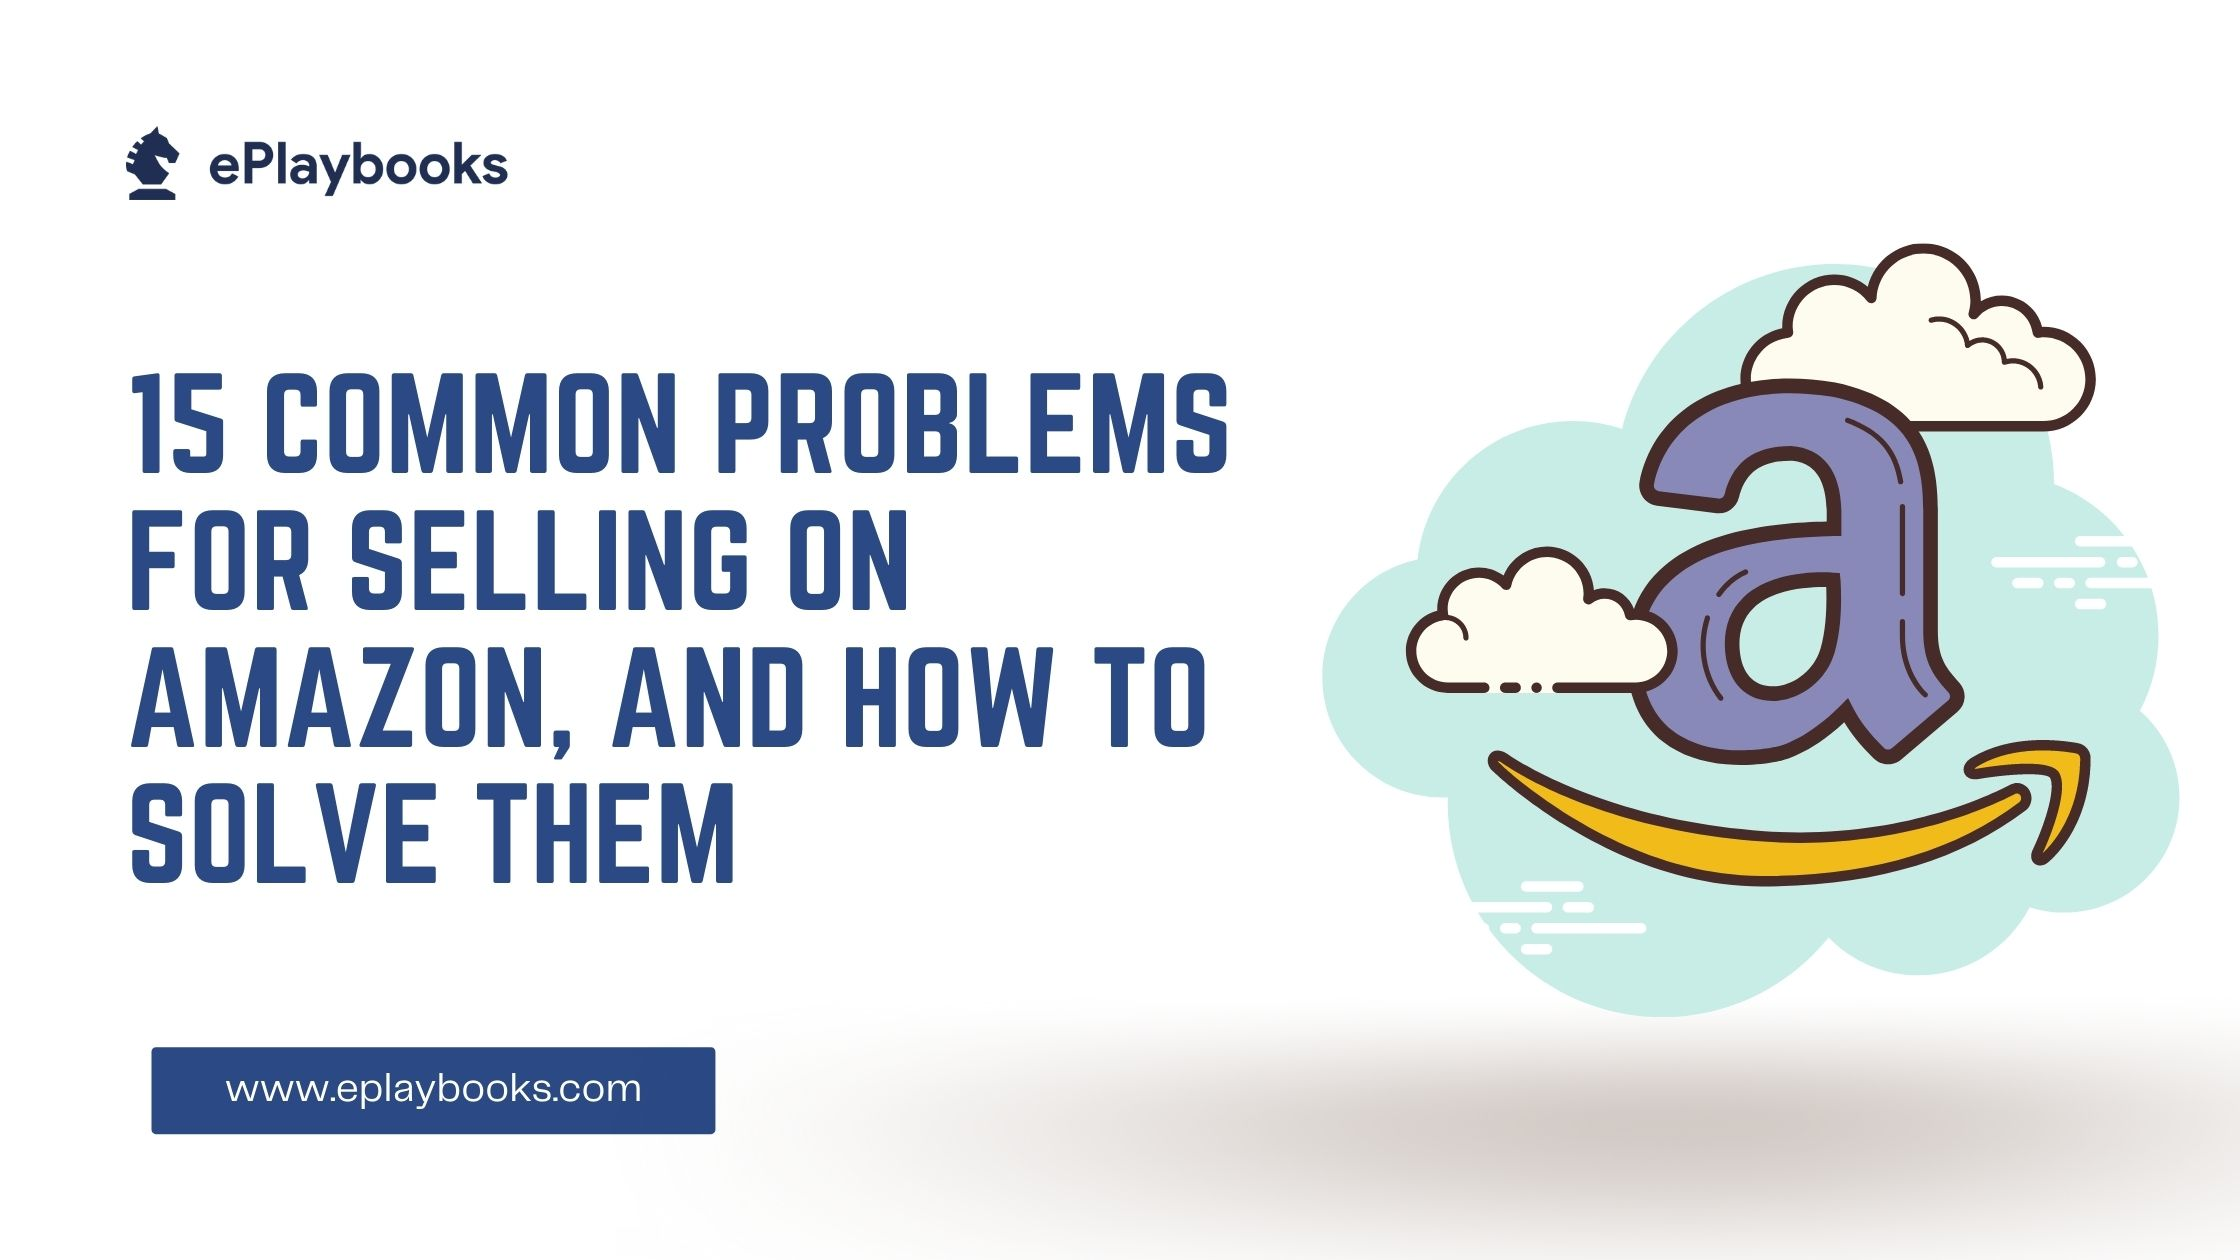 15 Common Problems for Selling on Amazon, and How to Solve Them